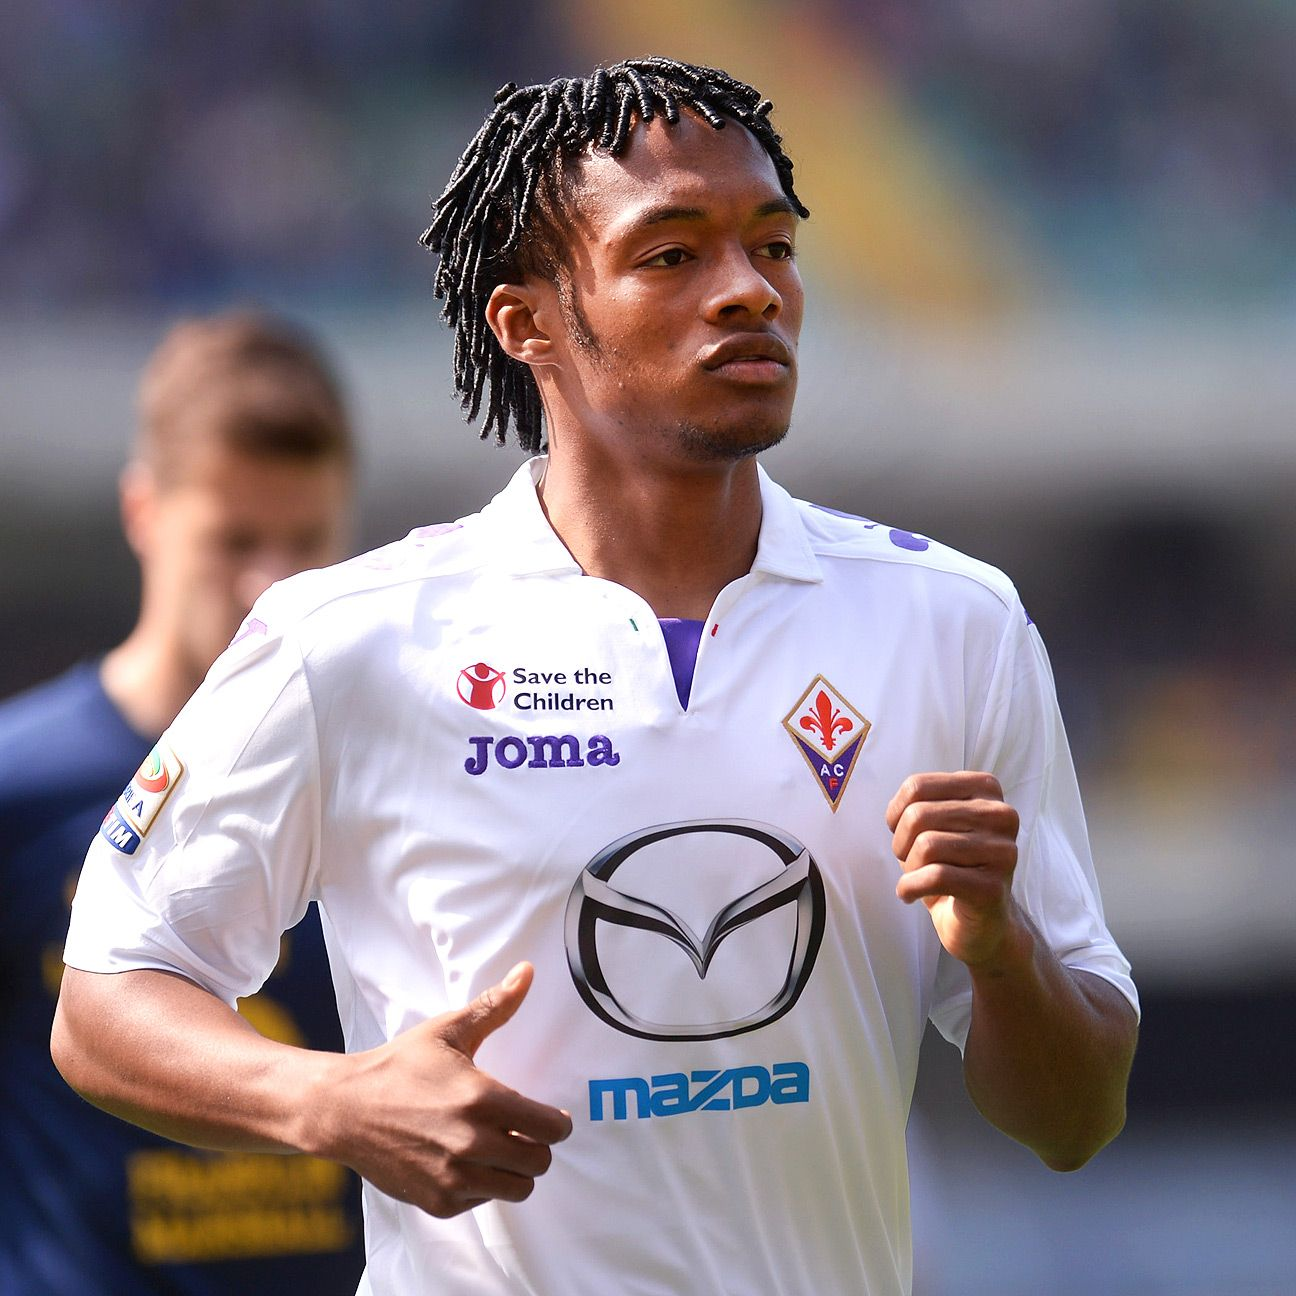 Fiorentina's Juan Cuadrado has been linked with a move to Barcelona.